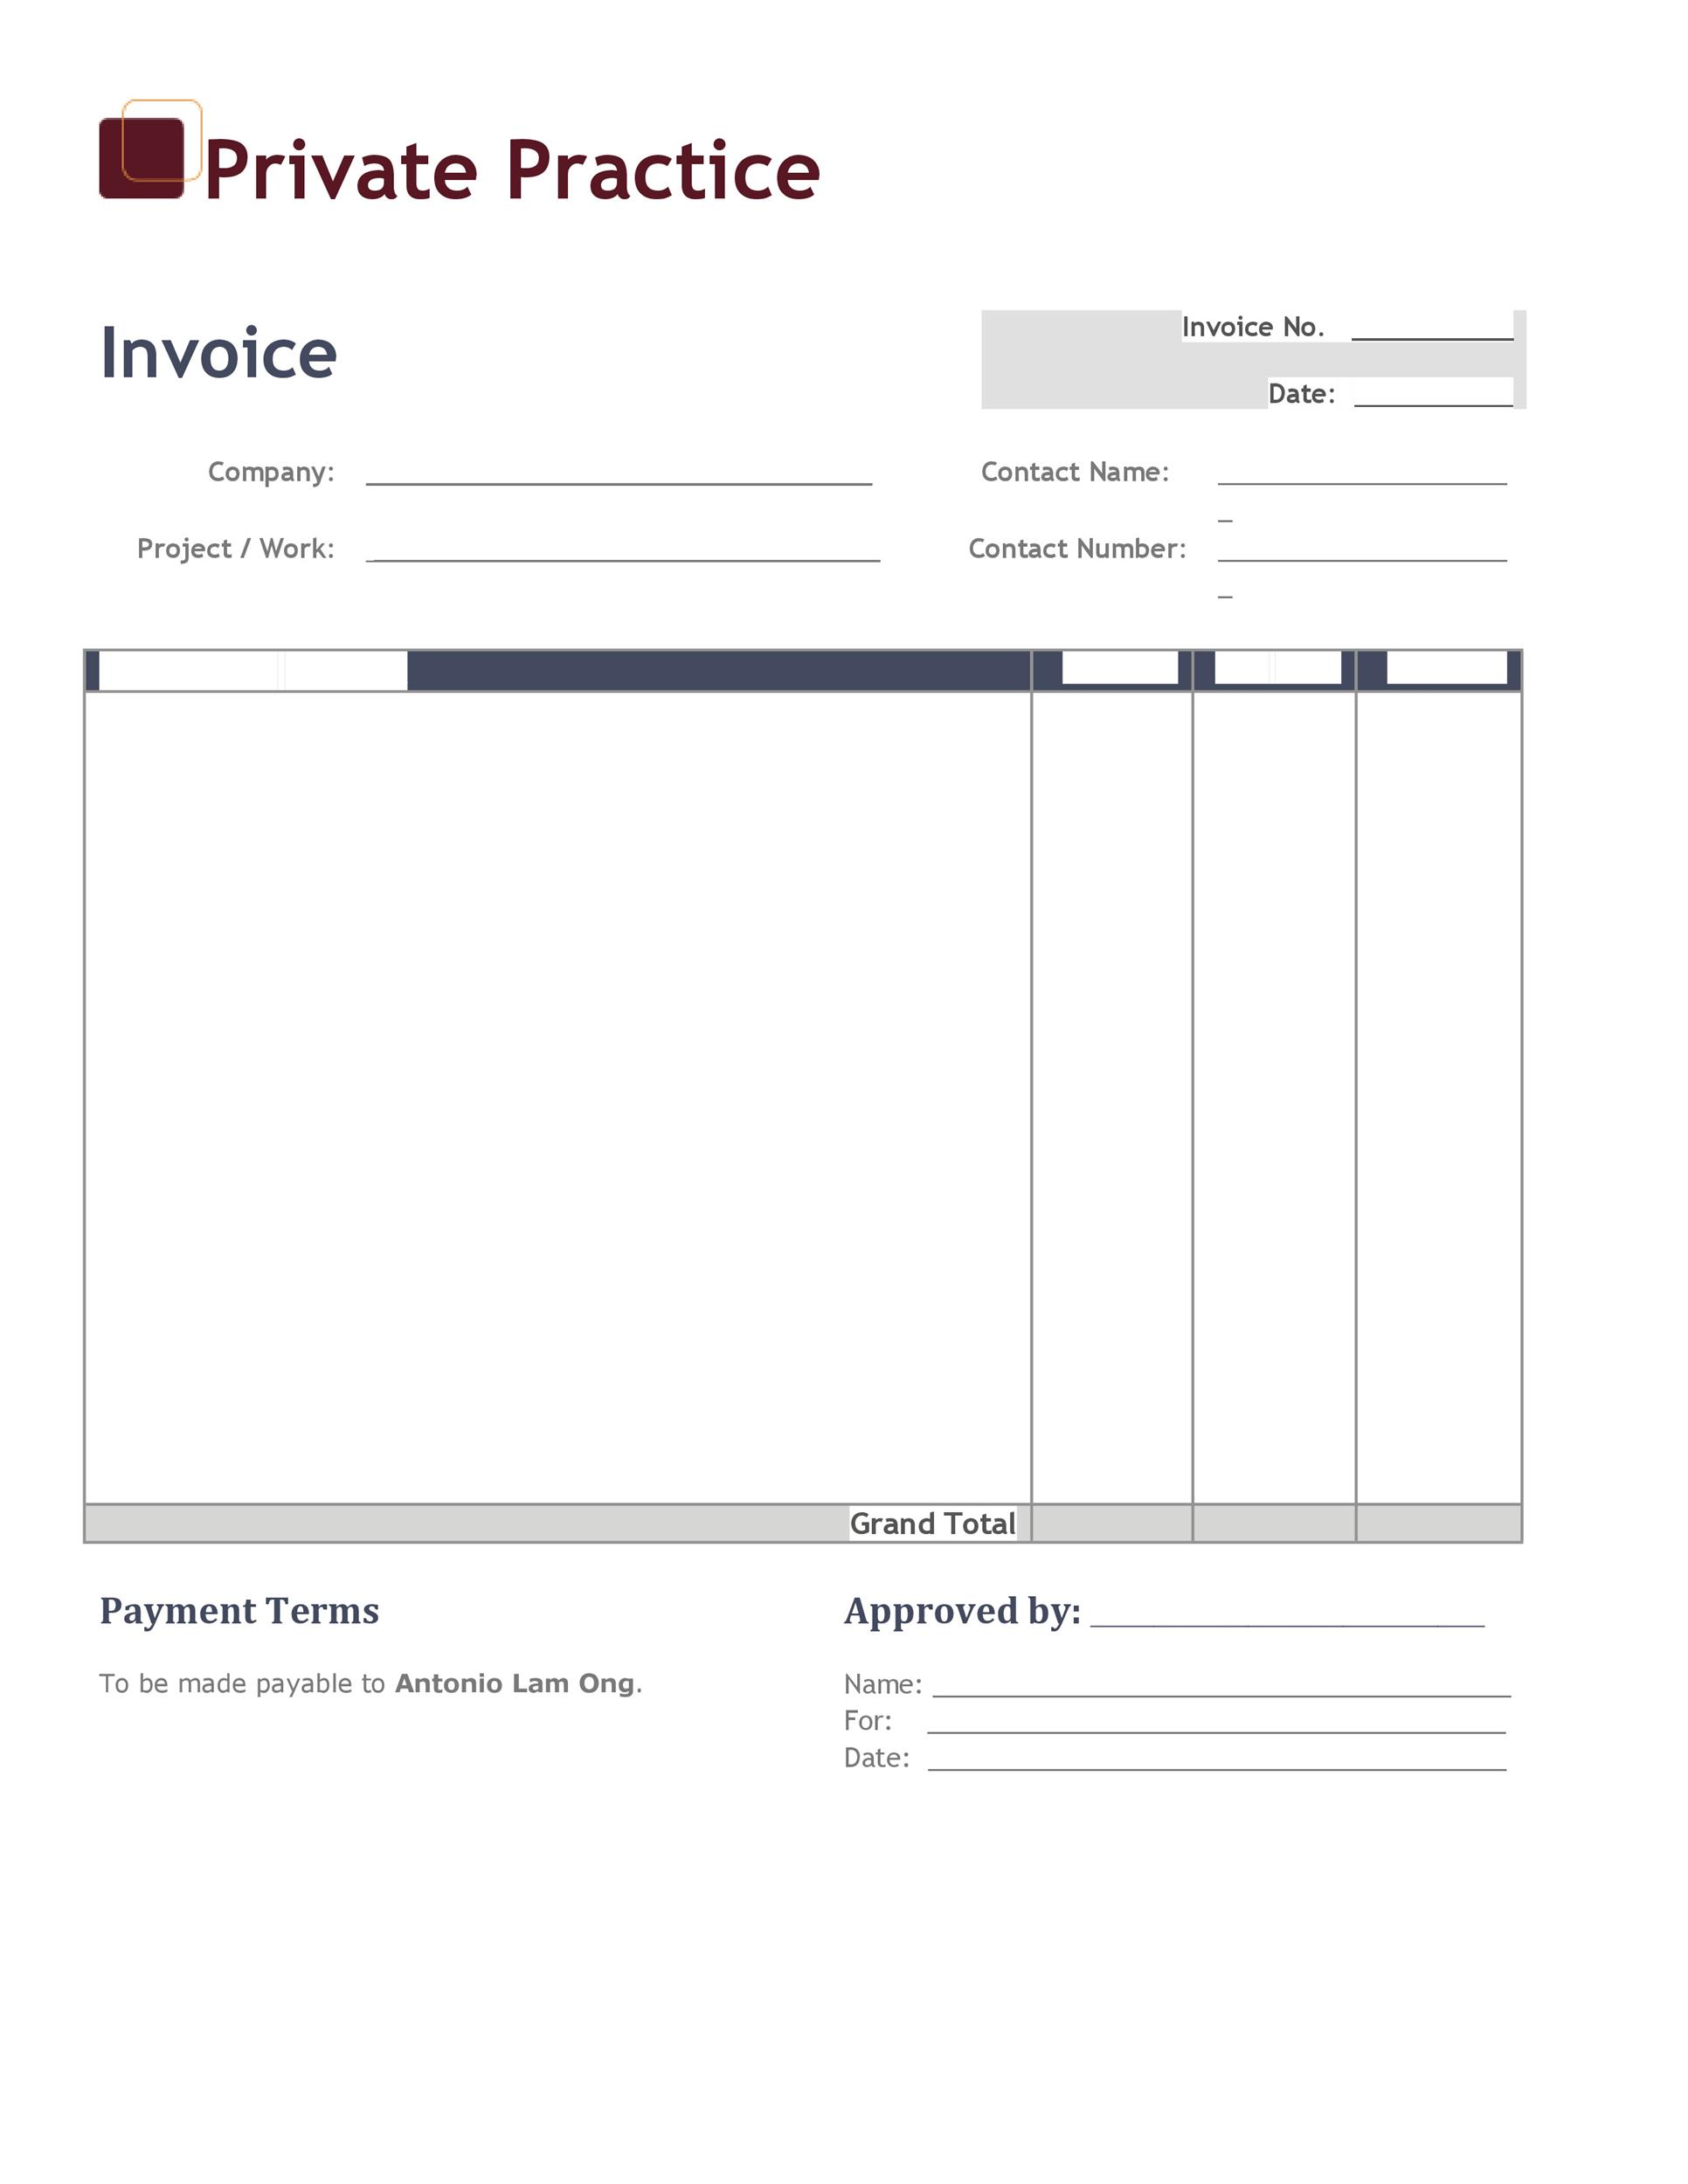 Invoice Templates Blank Commercial PDF Word Excel - Construction invoice form free for service business